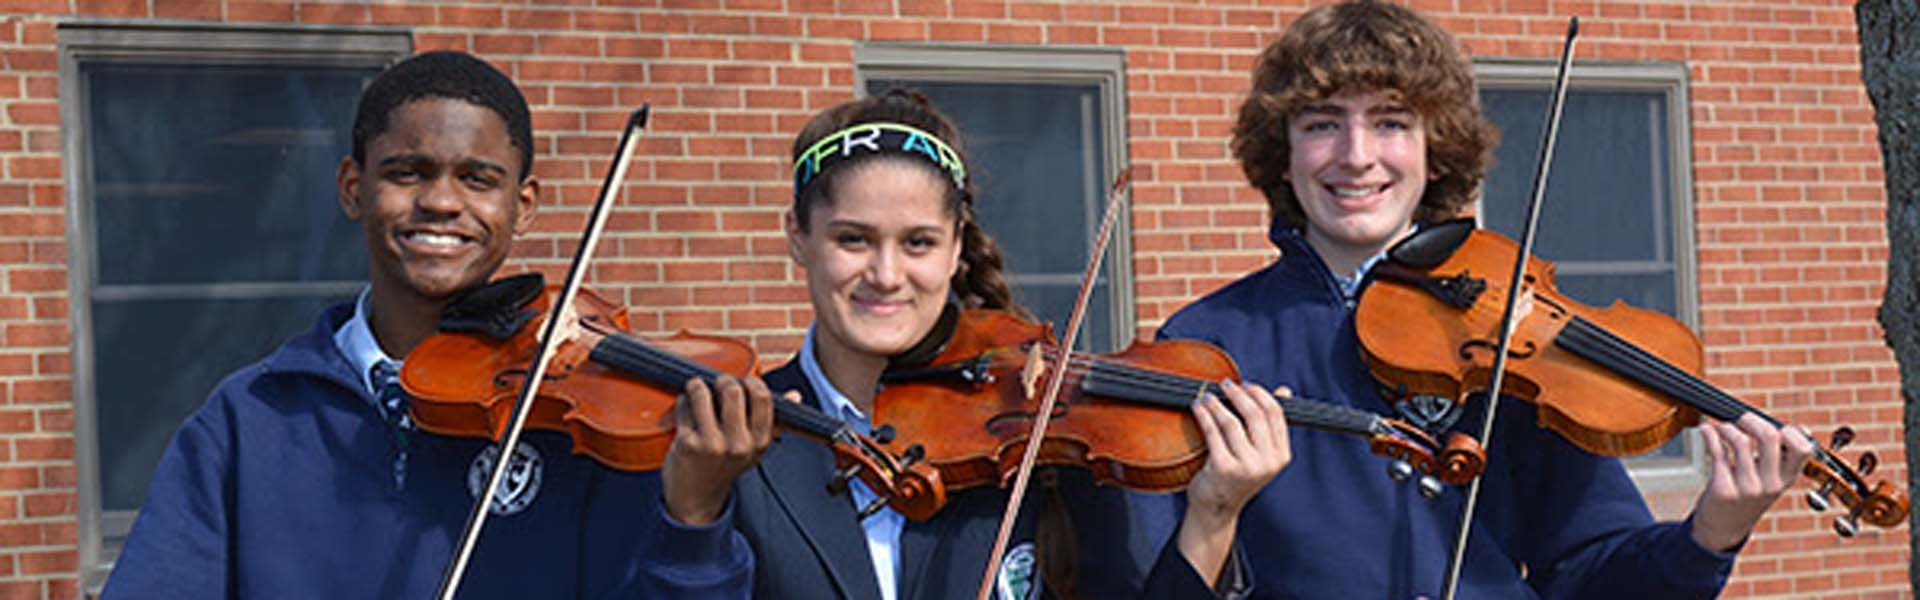 St Mary Ryken Maryland USA Violins Banner 2019